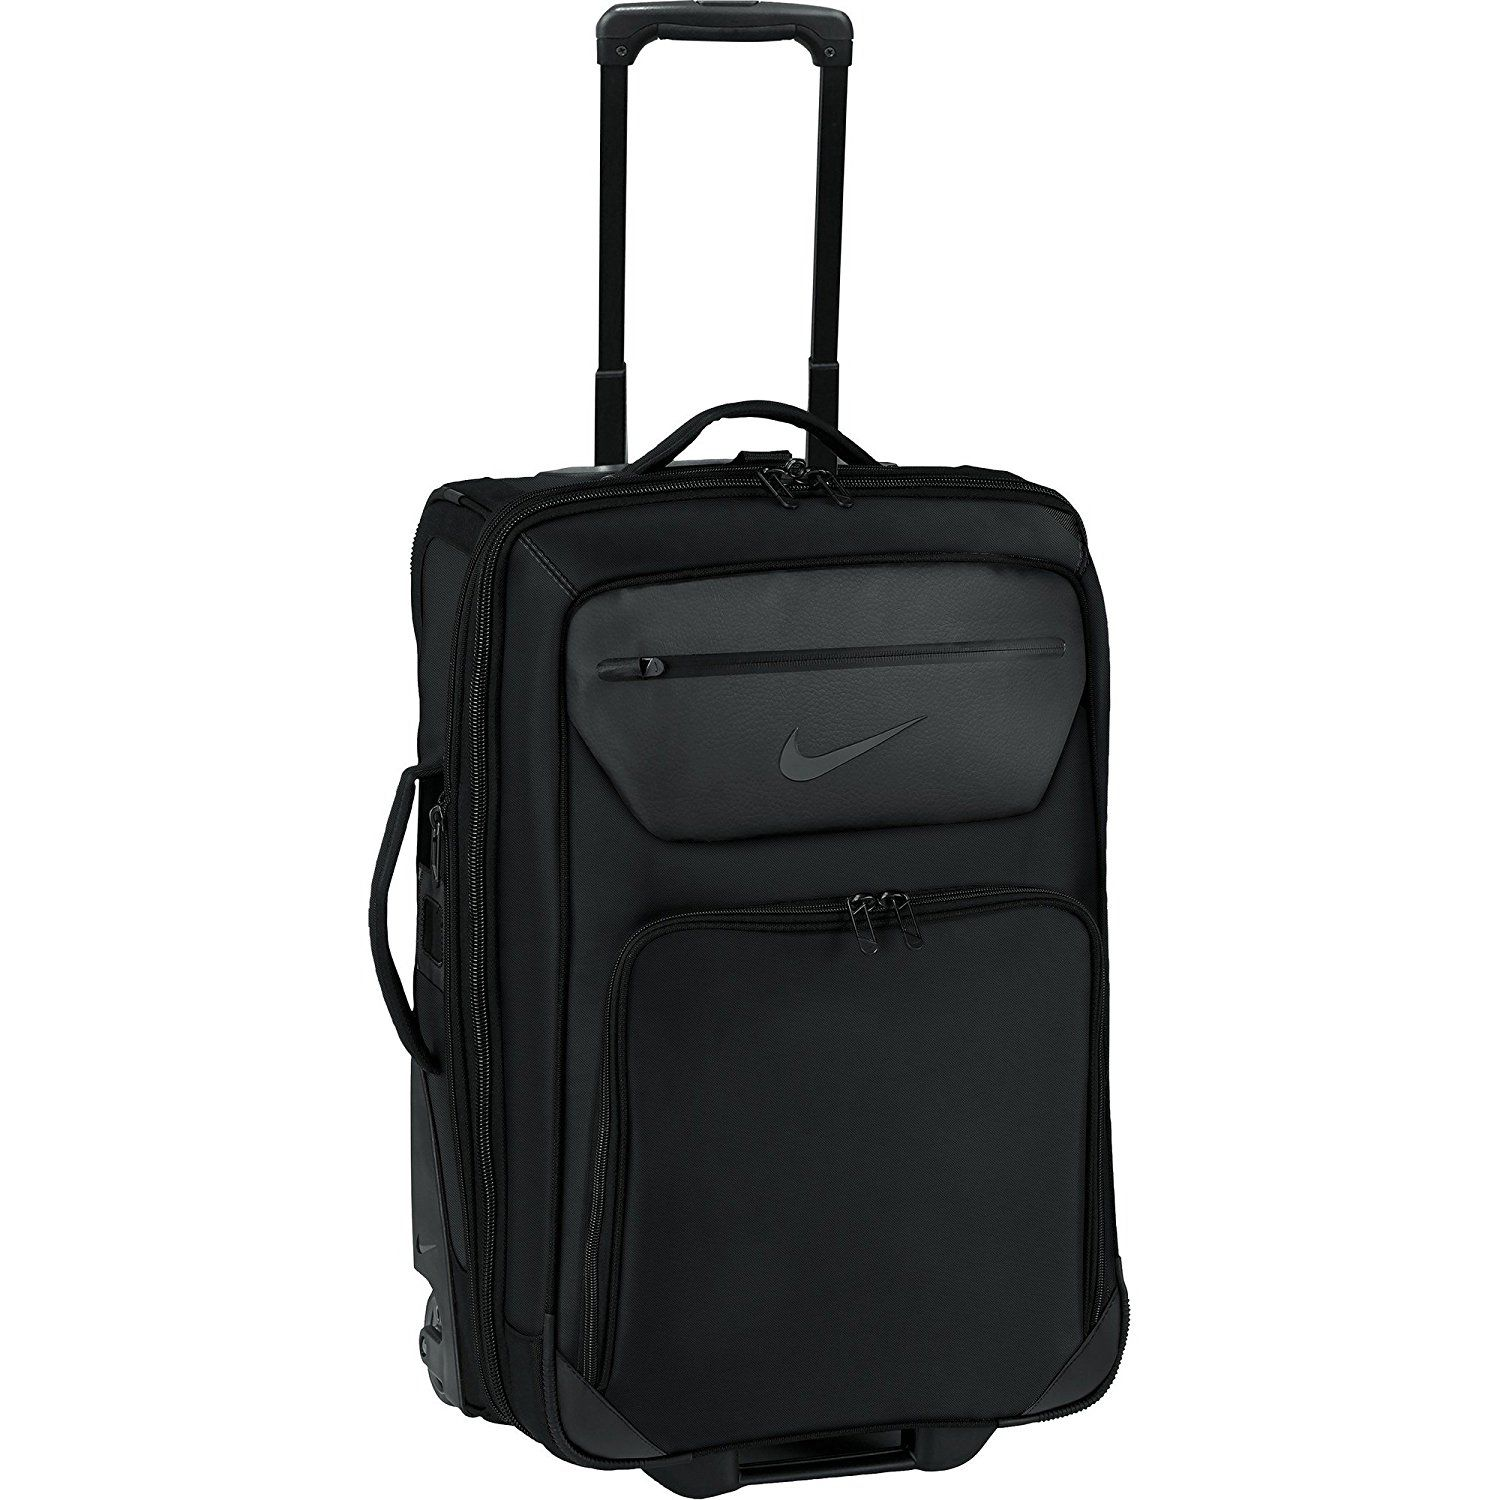 bandeja tetraedro Viscoso  Nike Departure III Roller Luggage Bag * Click image to review more details.  (This is an Amazon Affiliate link and I receive a co… | Luggage, Luggage  bags, Nike bags